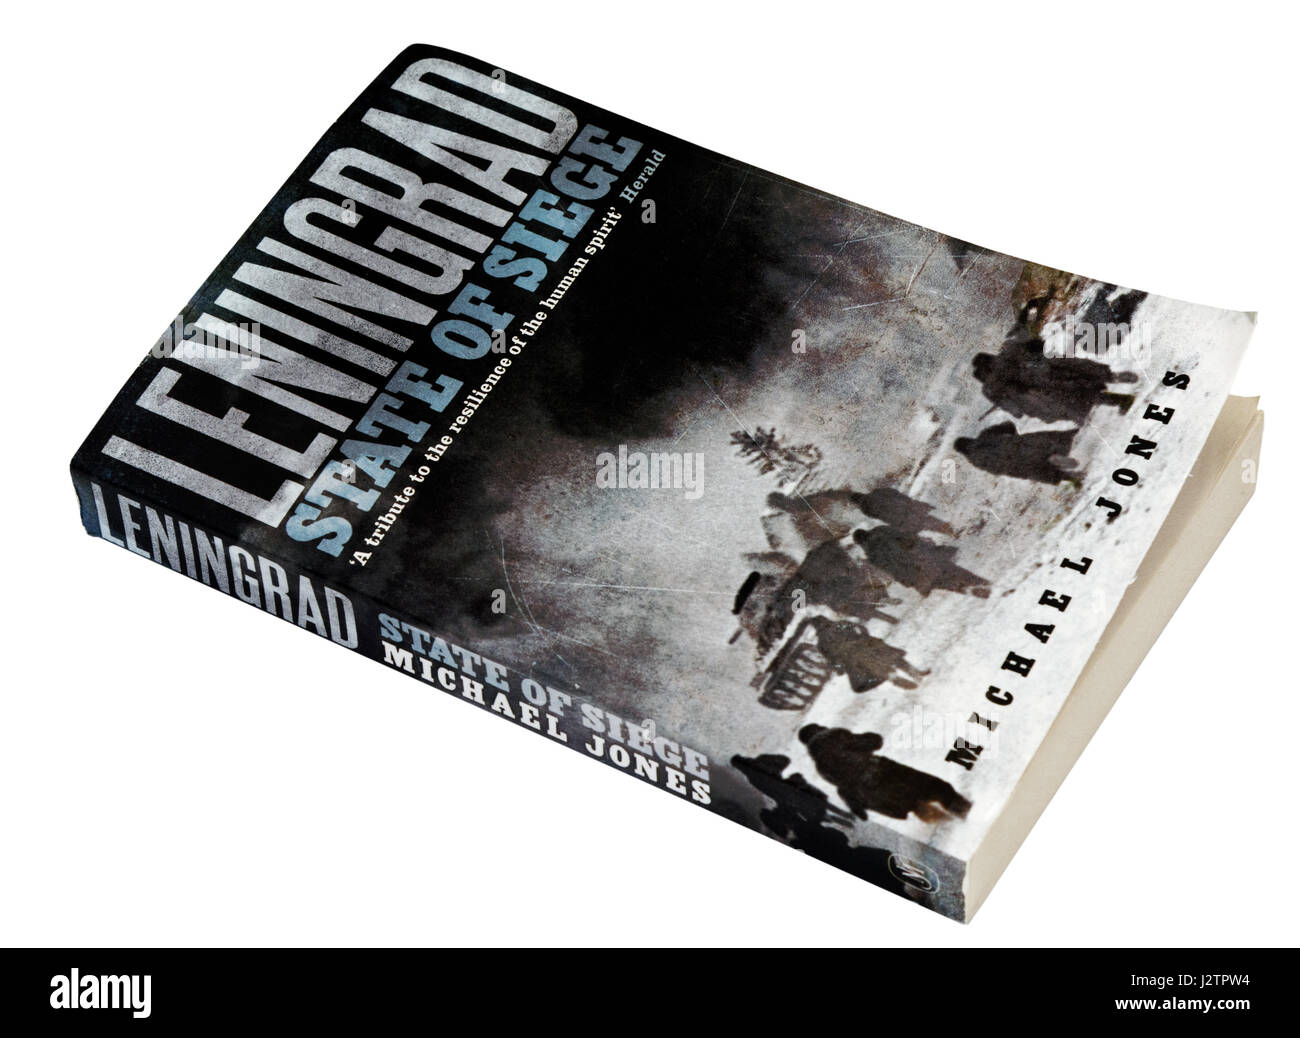 Leningrad: State of Siege by Michael Jones - Stock Image